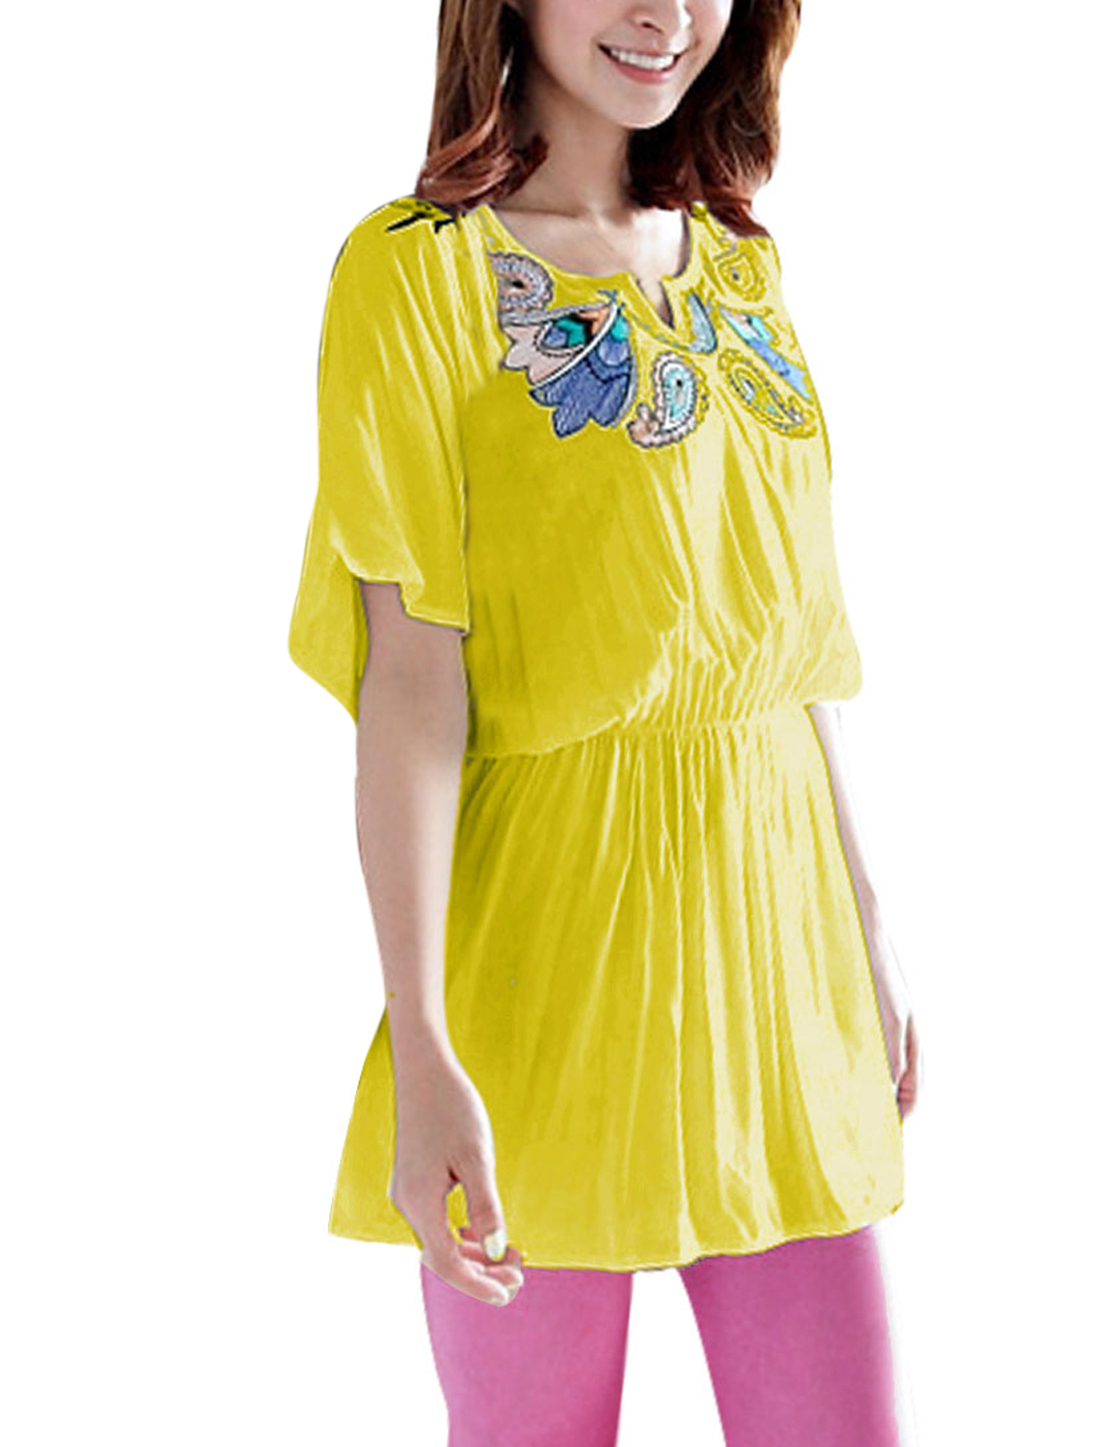 Women Batwing Sleeve Embroidery Detail Top Shirt Yellow S